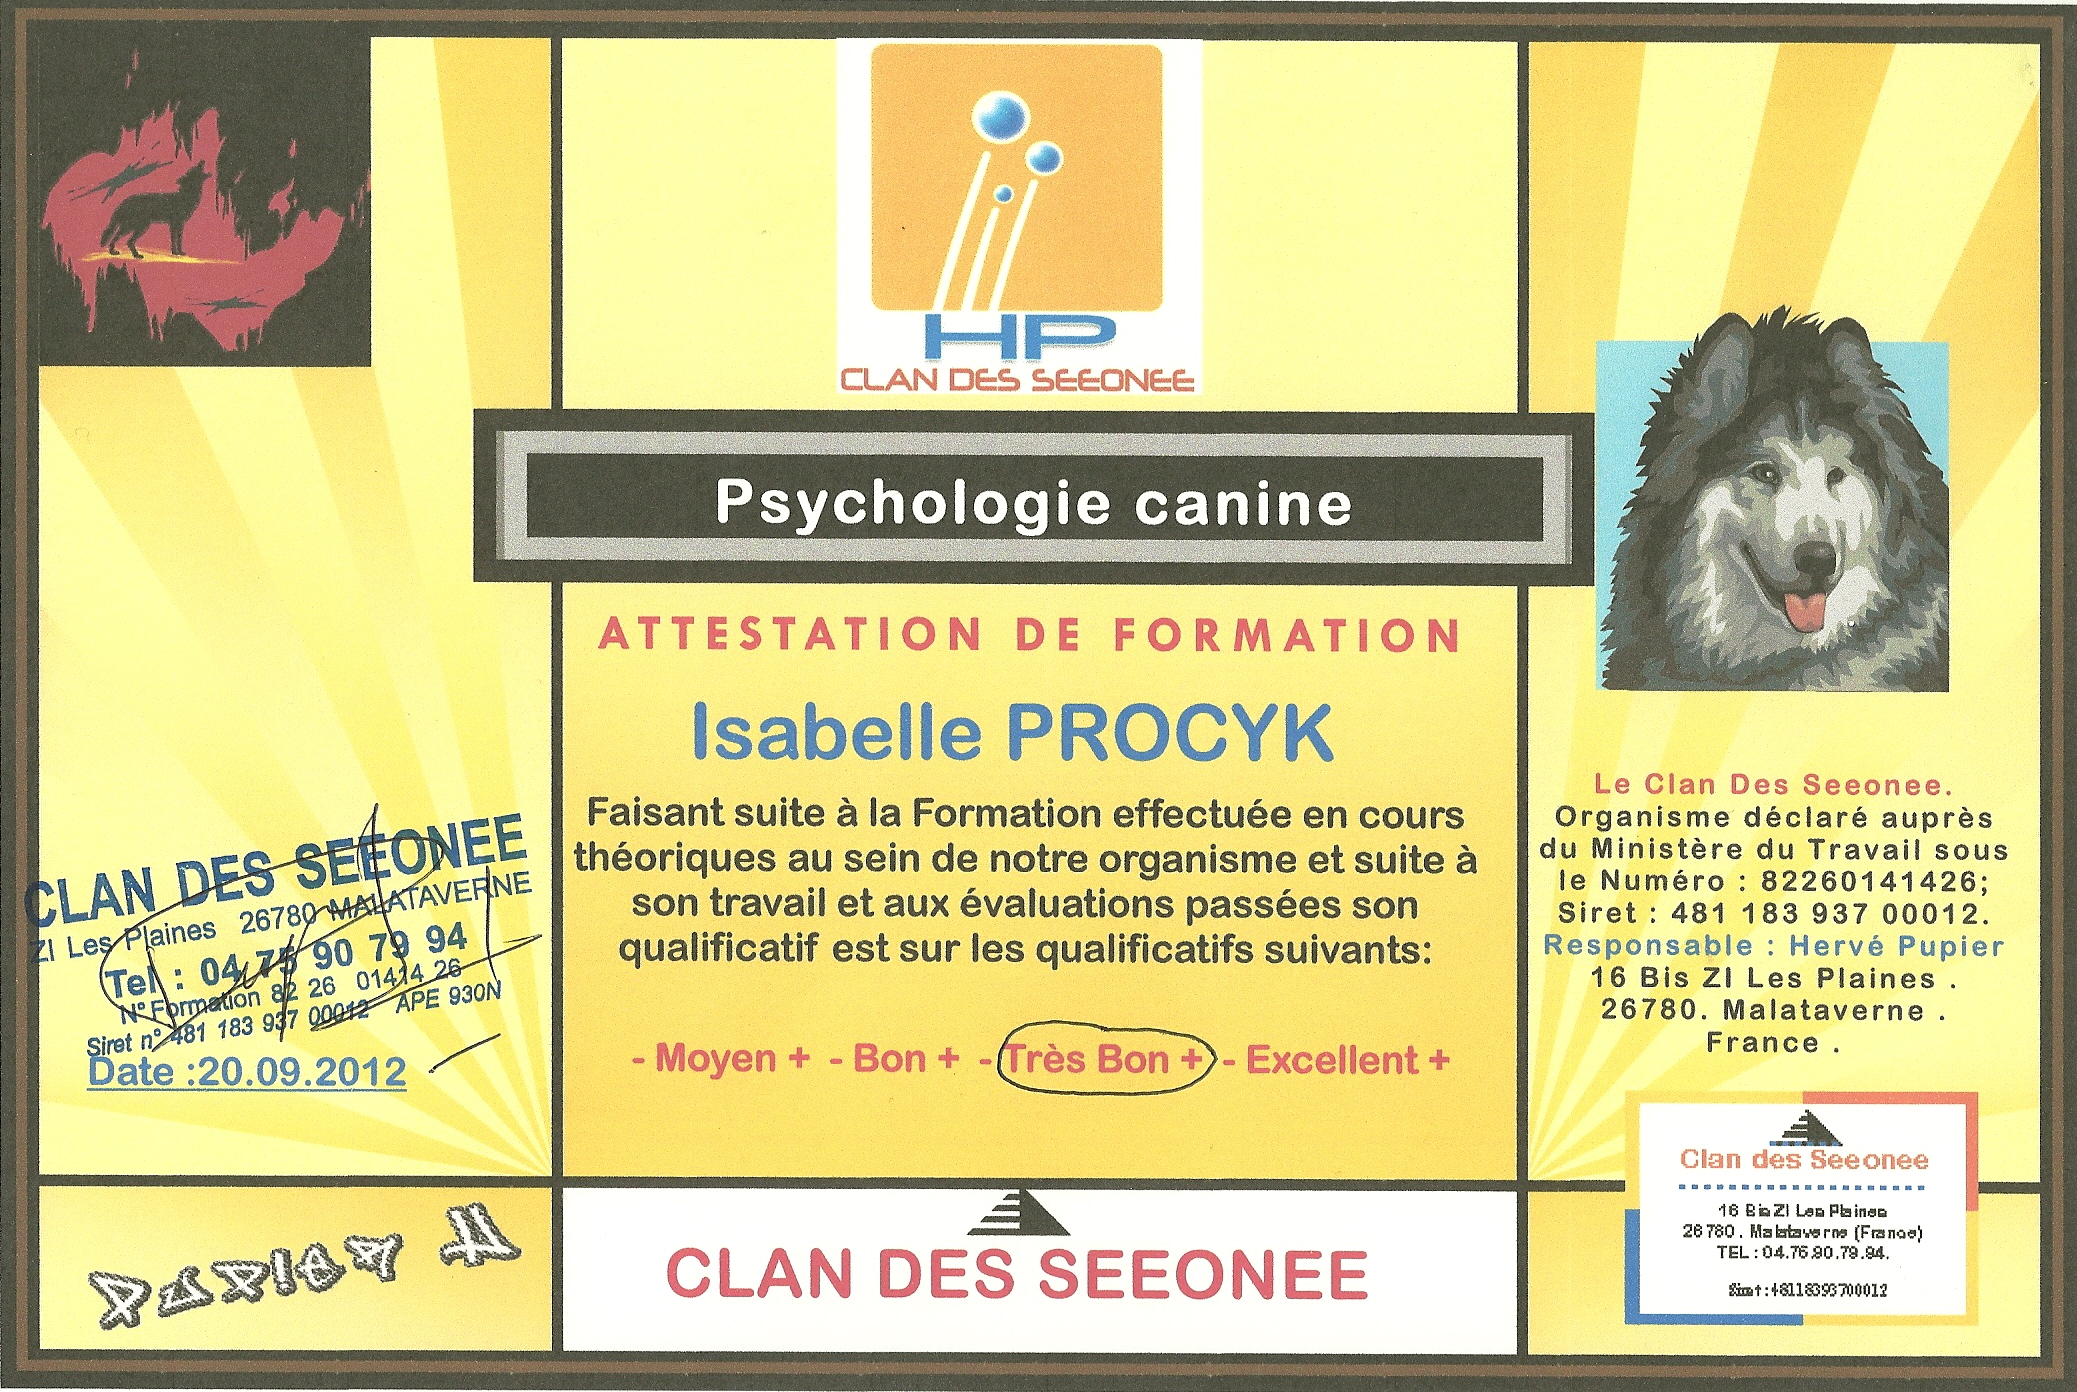 psychologie canine